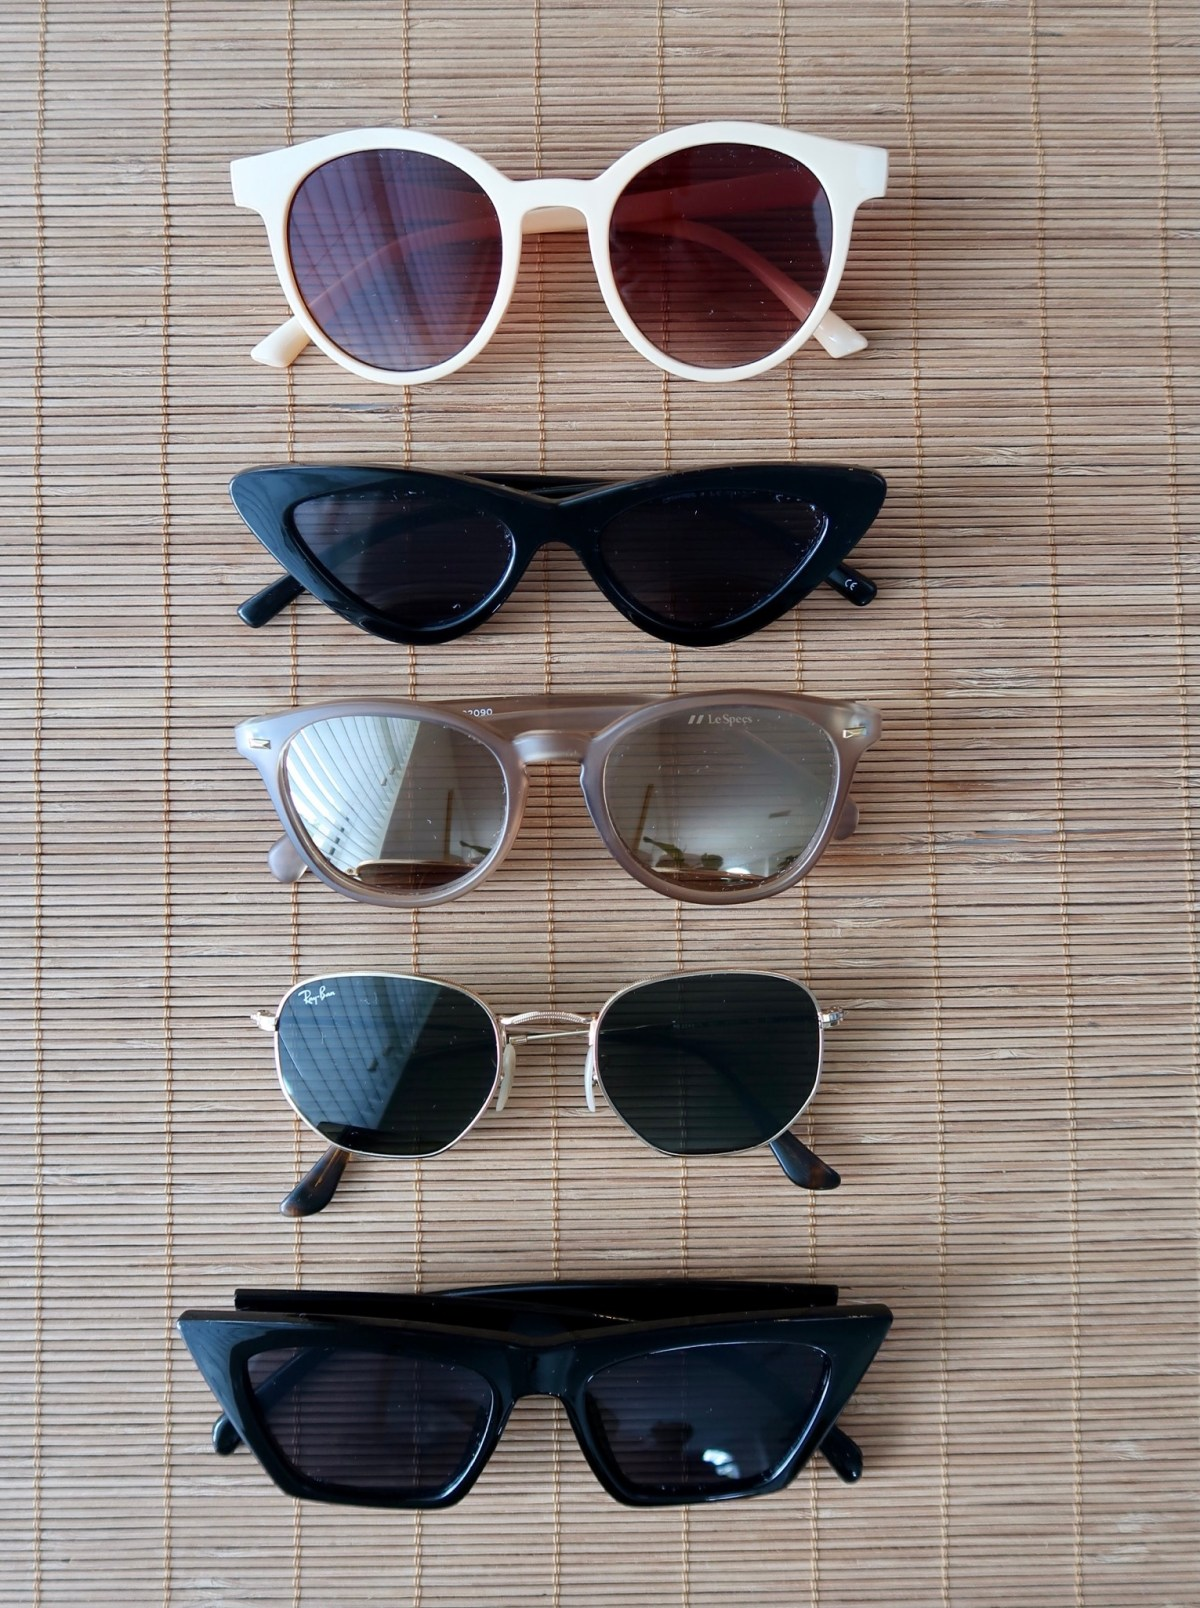 Best Amazon Sunglasses For Every Budget